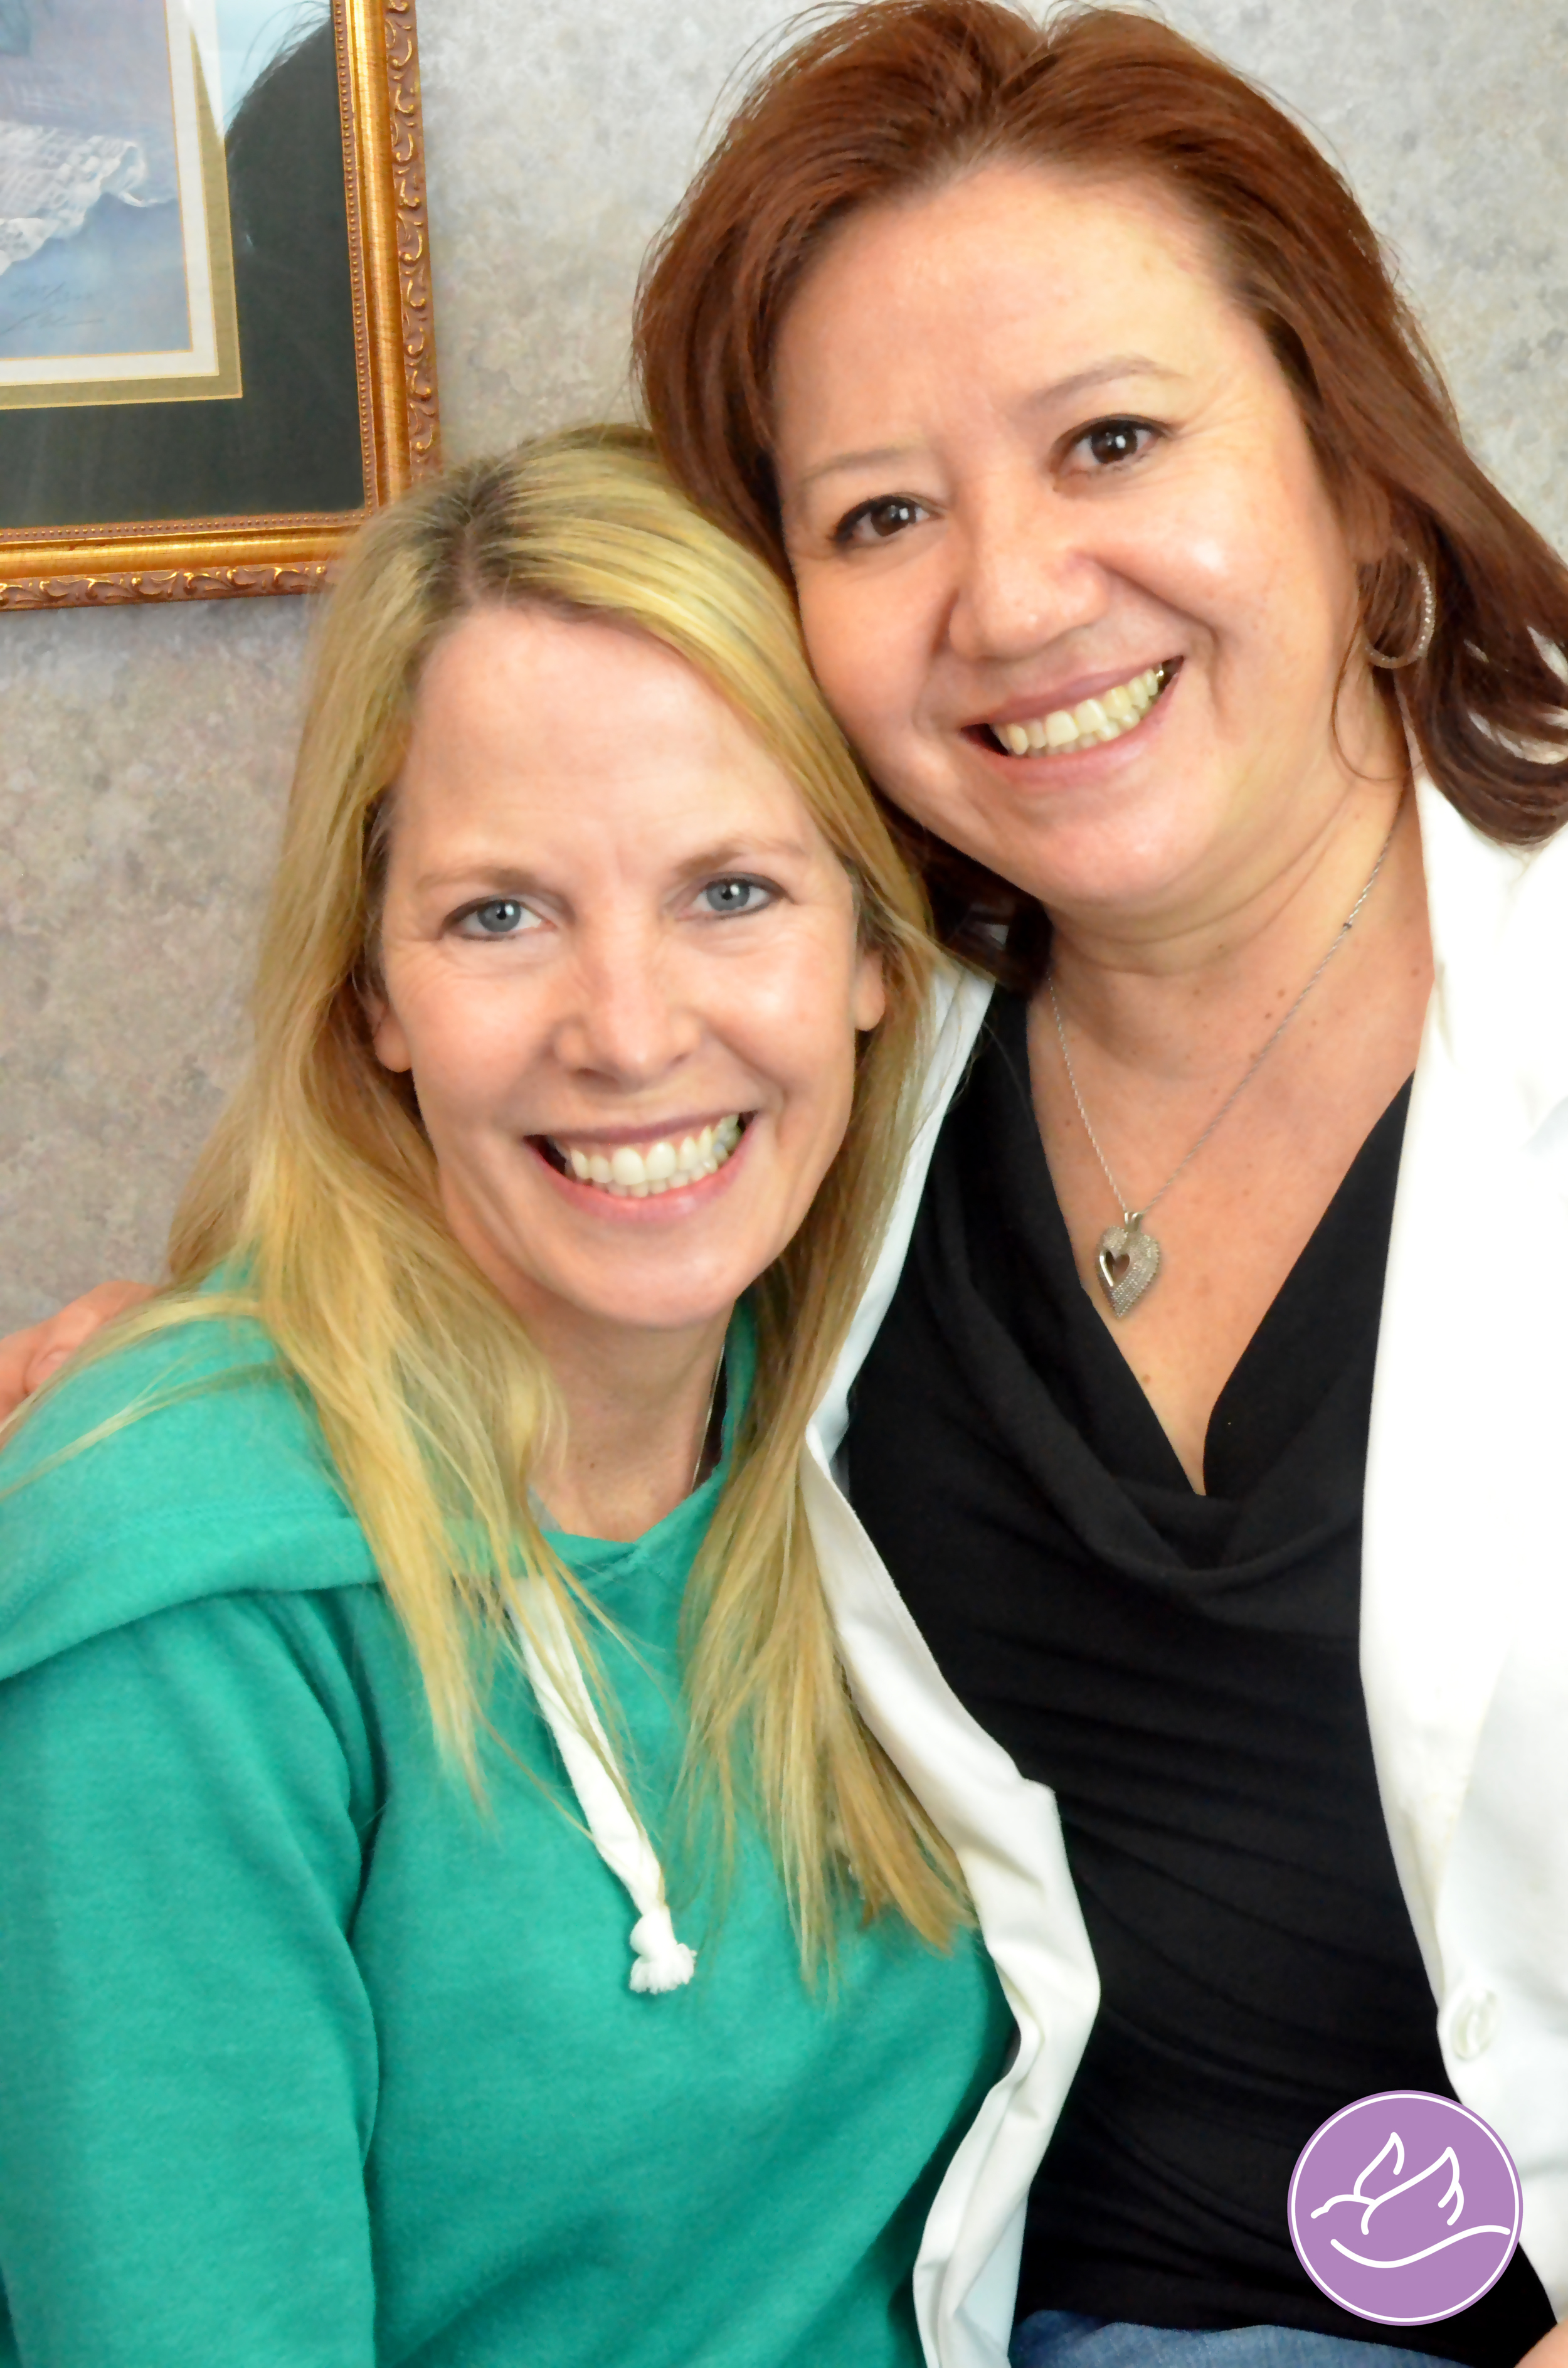 Teresa pictured here with one of her wonderful clients, friend, and model for our photos!